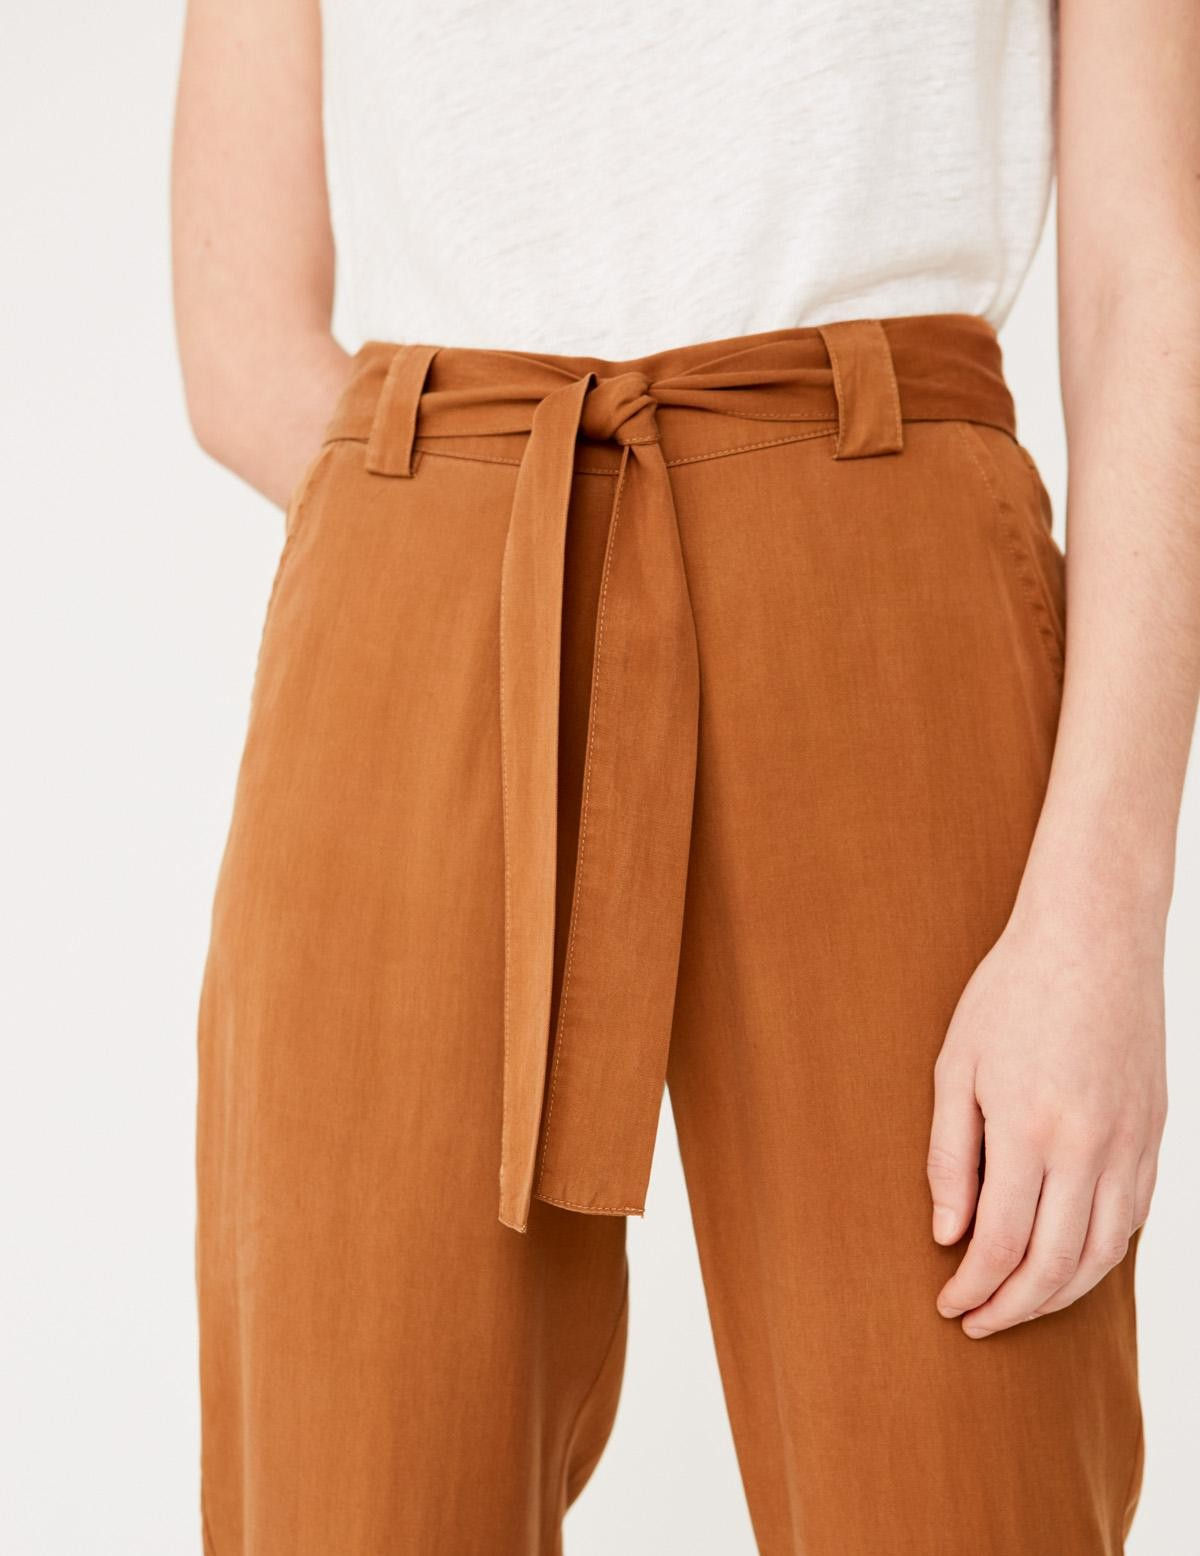 Flowing trousers - Item2